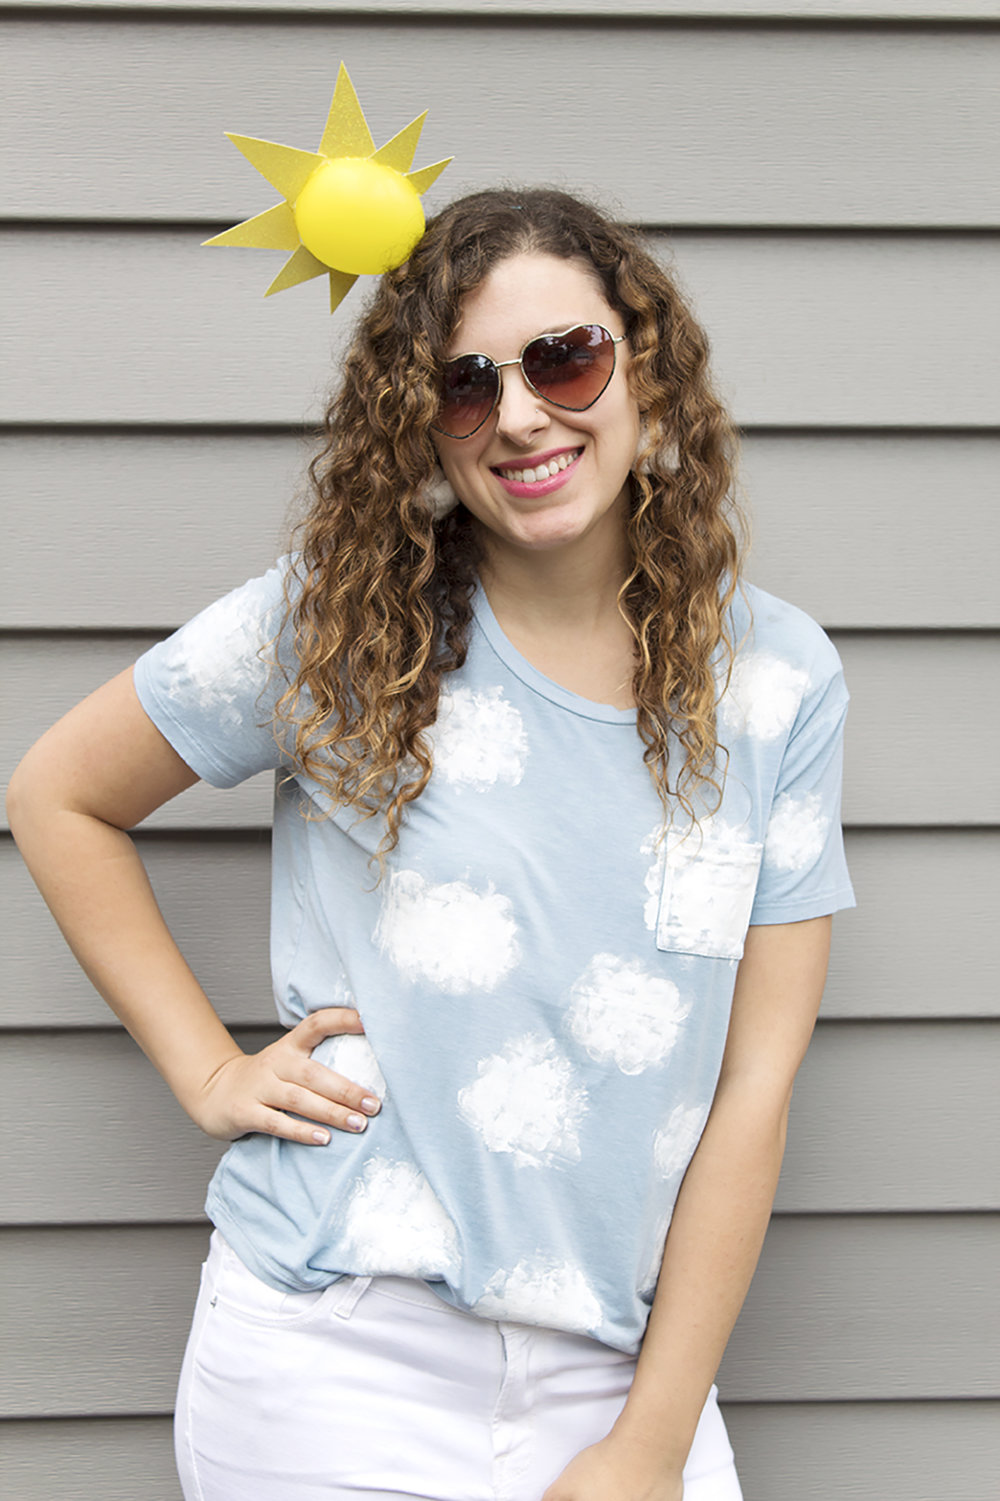 Looking for a quick and easy Halloween costume? Look no further! This last-minute cloud costume is made from a staple everyone has in their closet- a t-shirt! Click for the easy DIY. #halloweencostume #diycostume #lastminutecostume